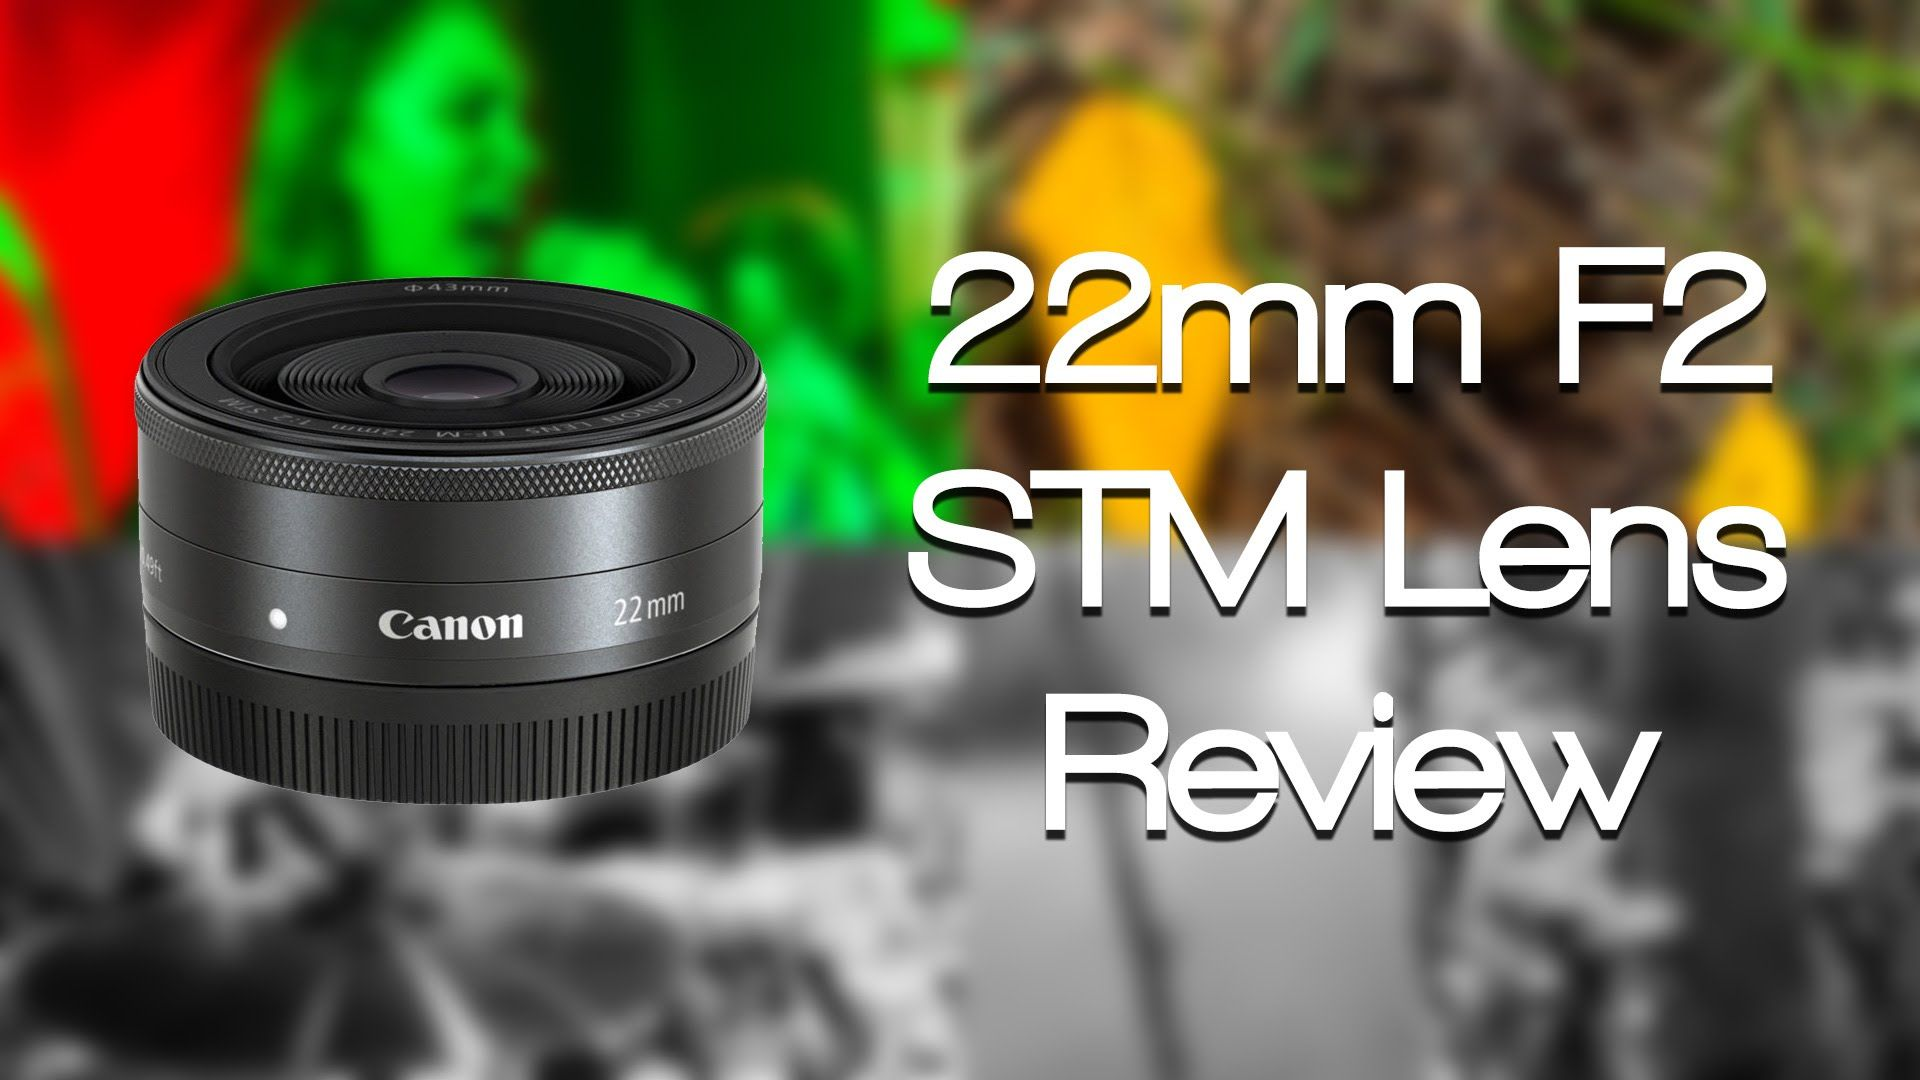 Canon Ef M 22mm F2 Stm Lens Review W Samples Canon Ef Canon Camera Lenses Canon